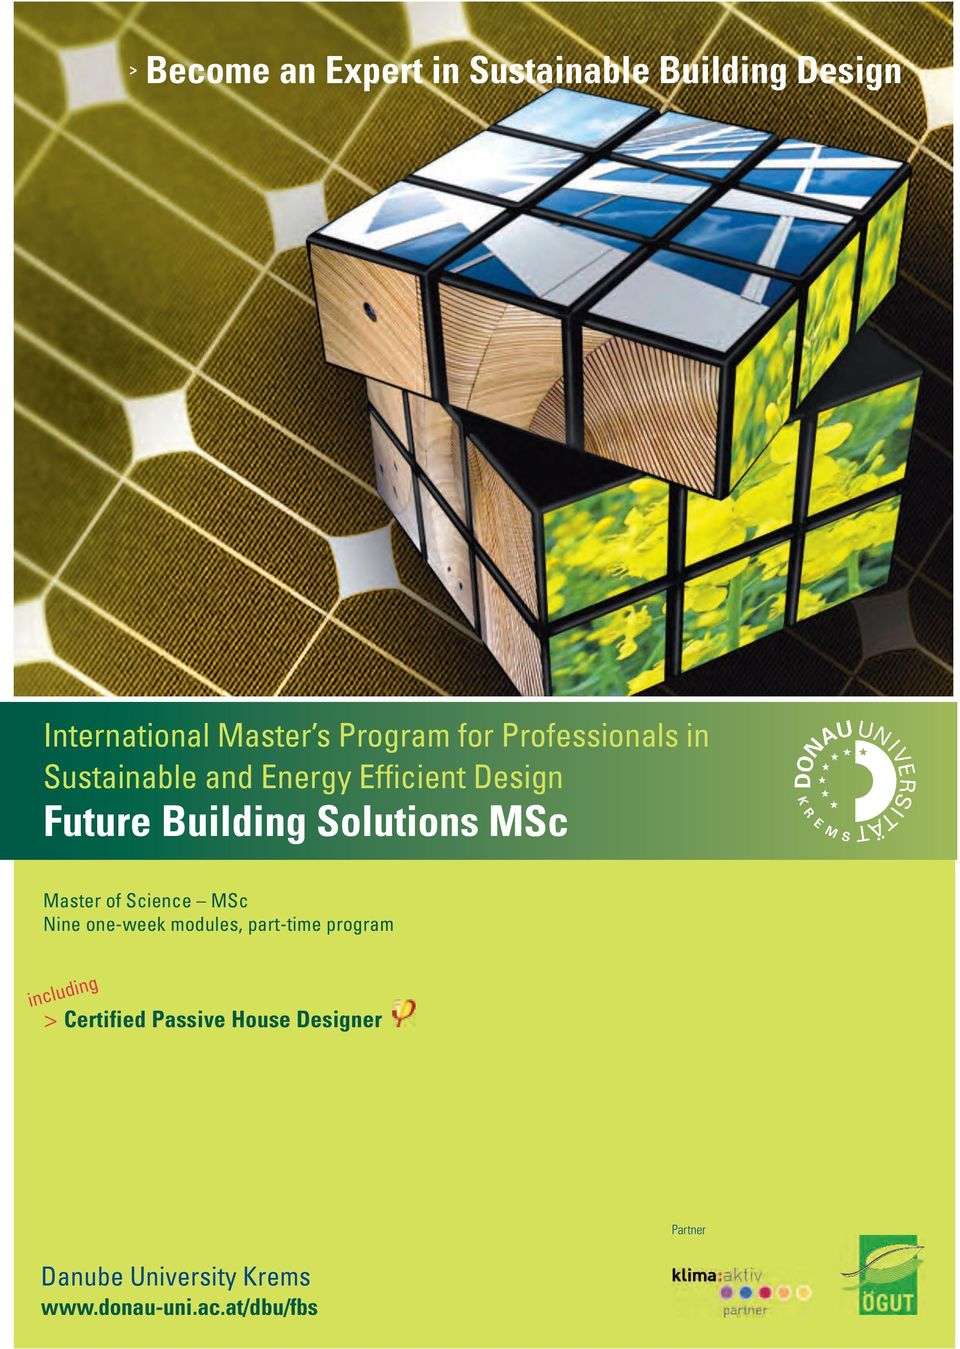 MSc Master of Science MSc Nine one-week modules, part-time program including >